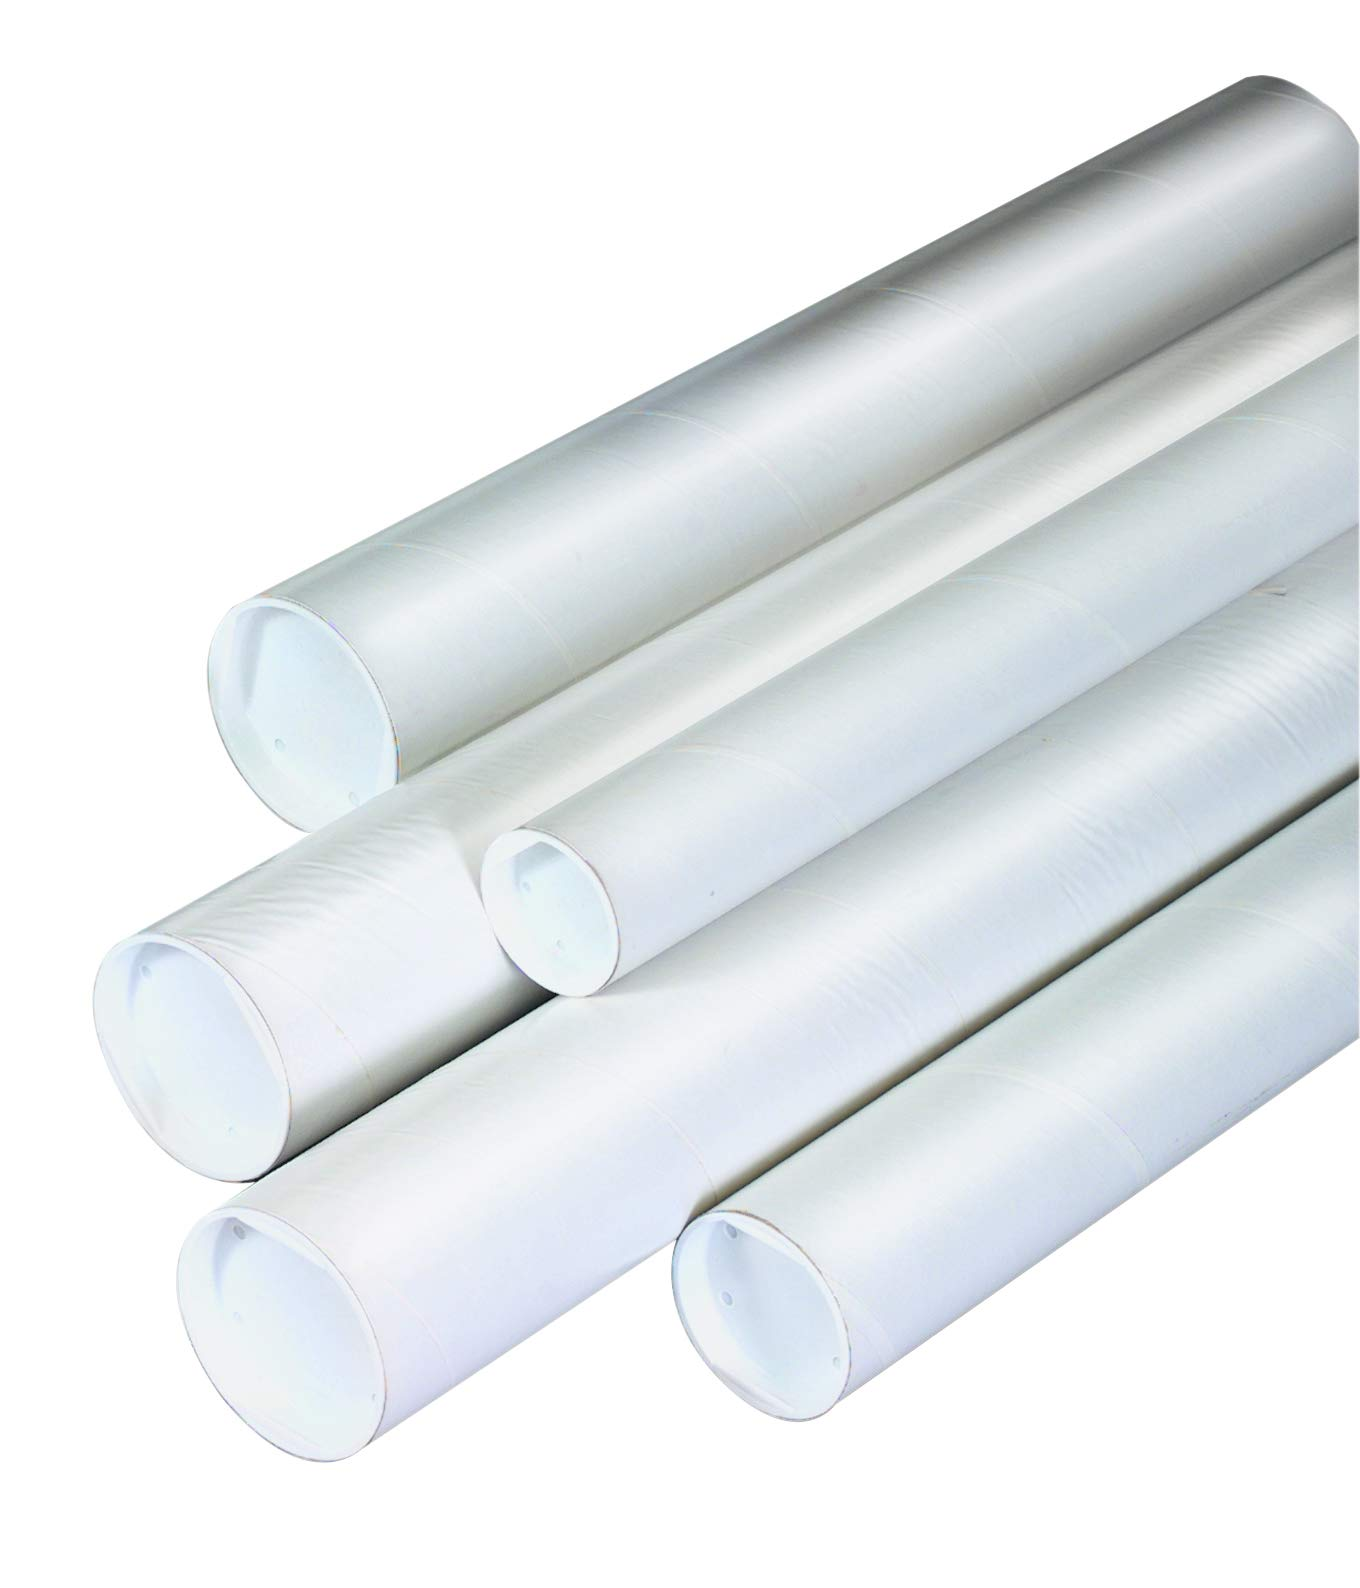 Aviditi P2524W Mailing Tubes with Caps, 2-1/2'' x 24'', White (Pack of 34) by Aviditi